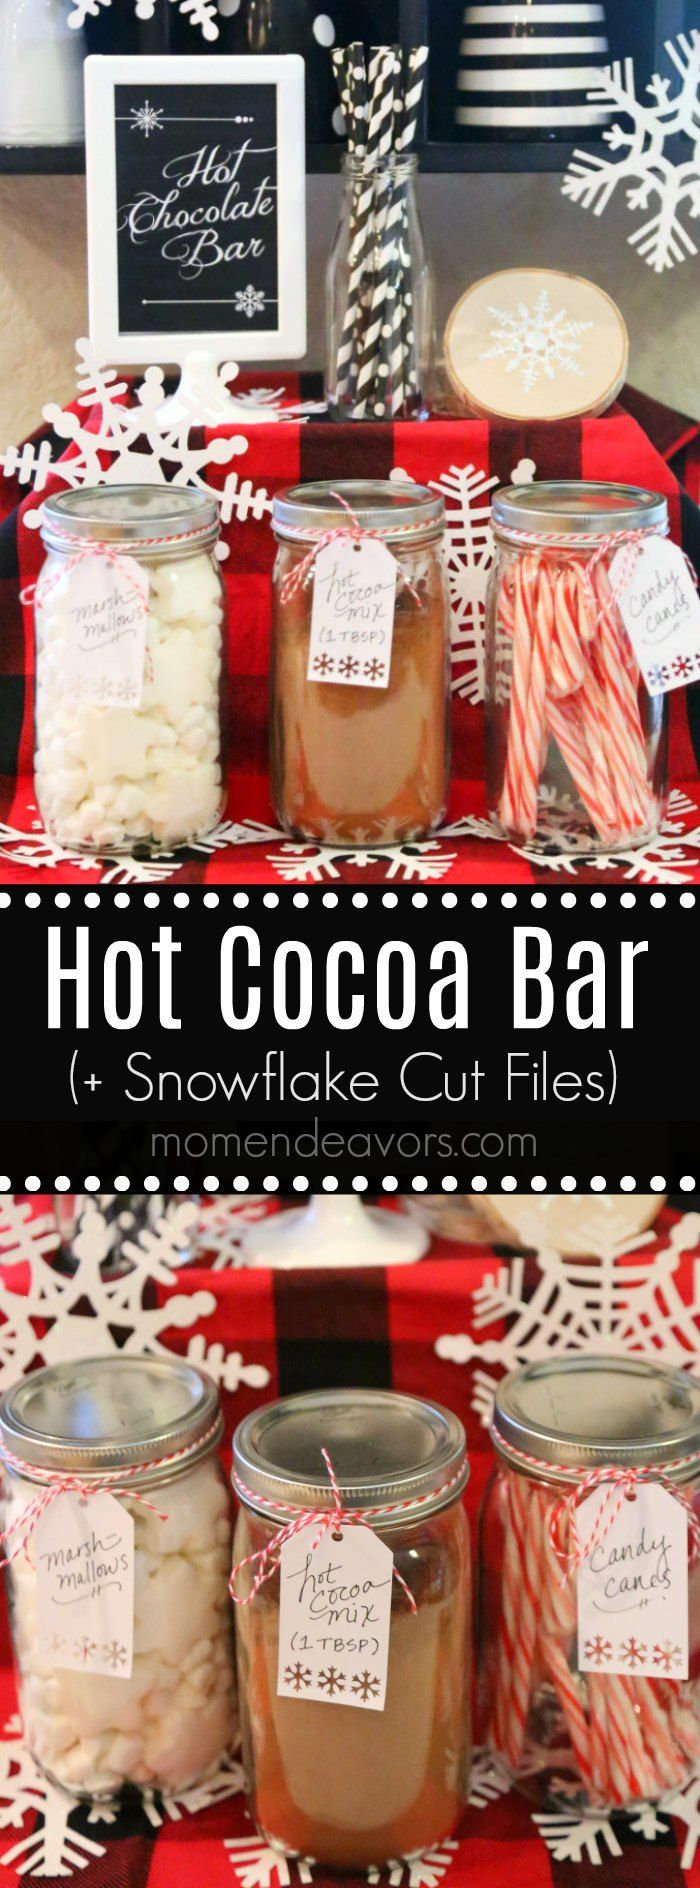 Snowflake Hot Cocoa Bar - ideas, free printable, & snowflake Cricut cut files for setting up a hot chocolate bar perfect for holiday parties or for the whole winter season! #CricutHoliday #CricutMade AD